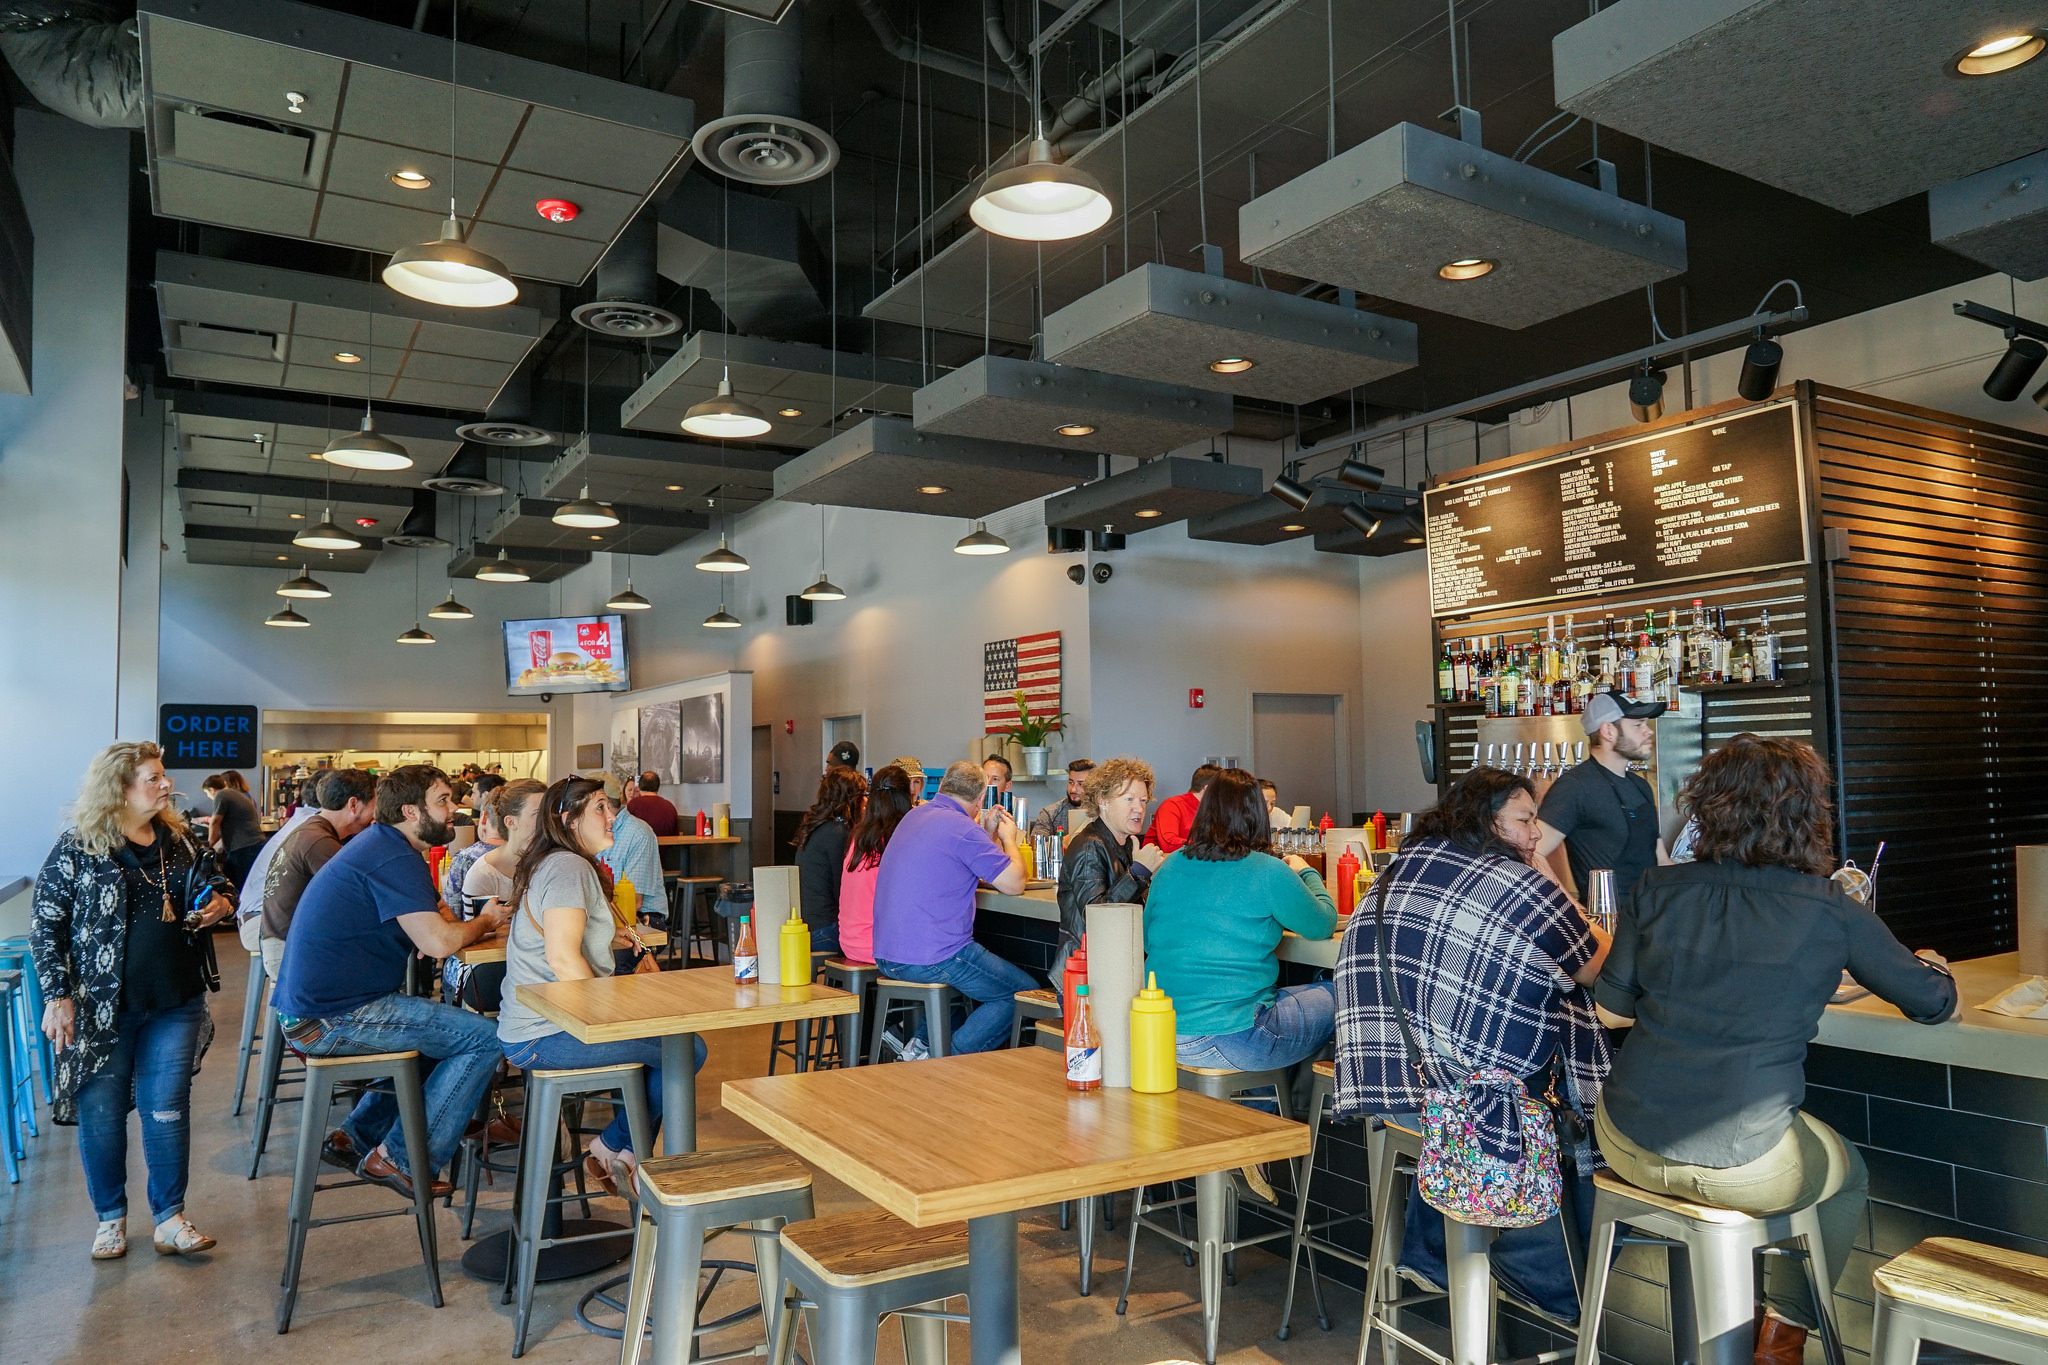 The inside of the downtown Company Burger is similar to its uptown counterpart on Freret Street, except this one is a little bigger -- both in the kitchen, number of seats, and now with a full service bar. It's open all day seven days a week for lunch and dinner, and is a popular spot to tailgate when there's a Saints game in the nearby Superdome.